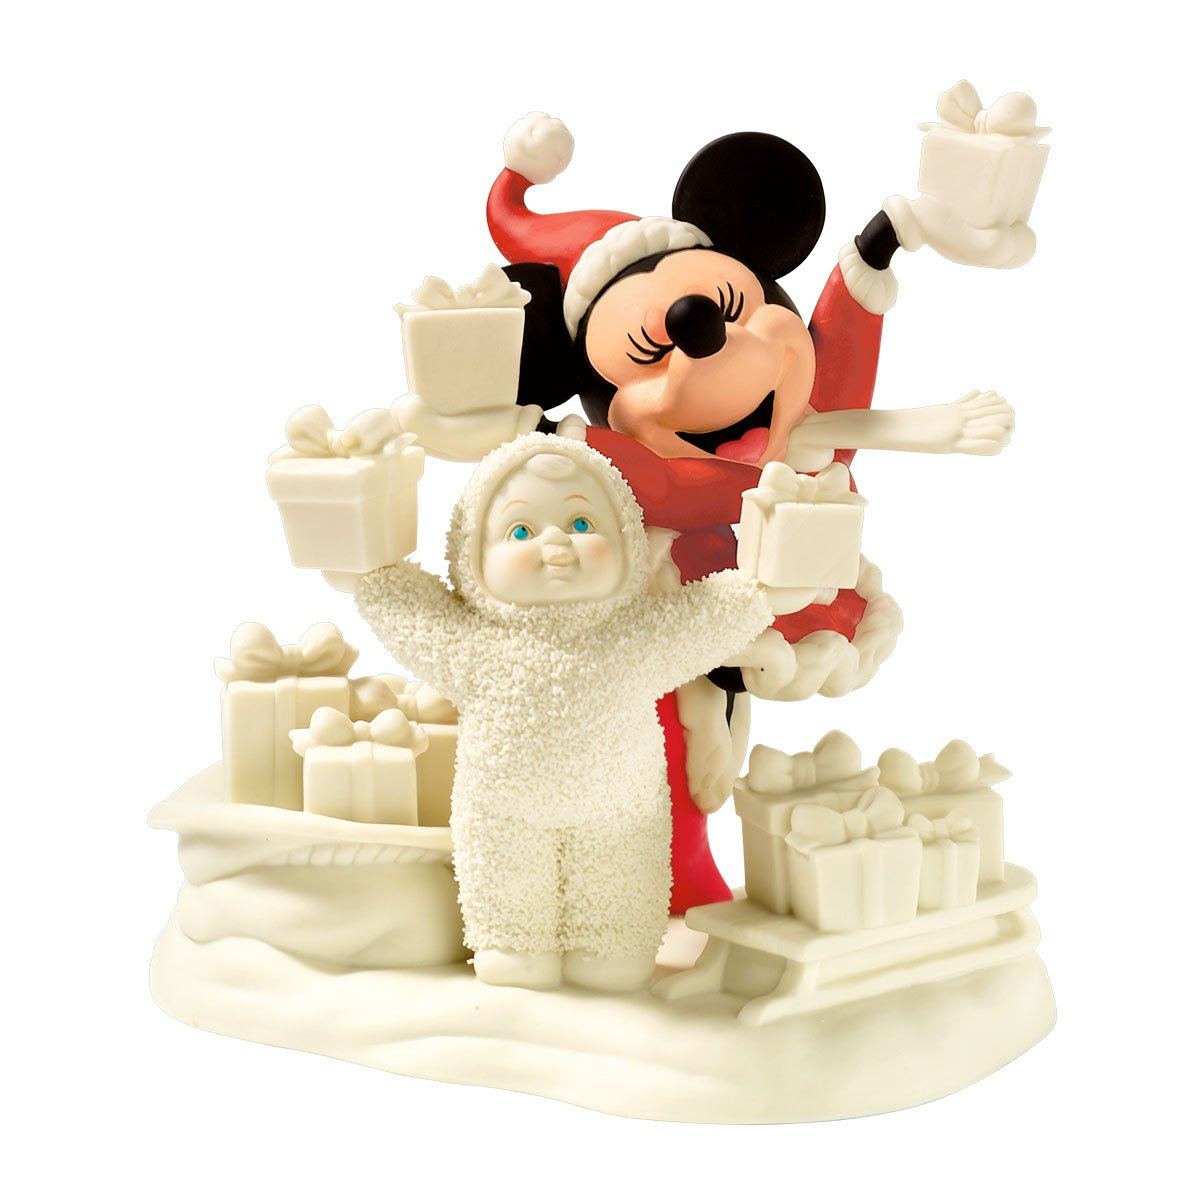 Department 56 Snowbabies Guest Collection Disney Look What We Have For Mickey Figurine